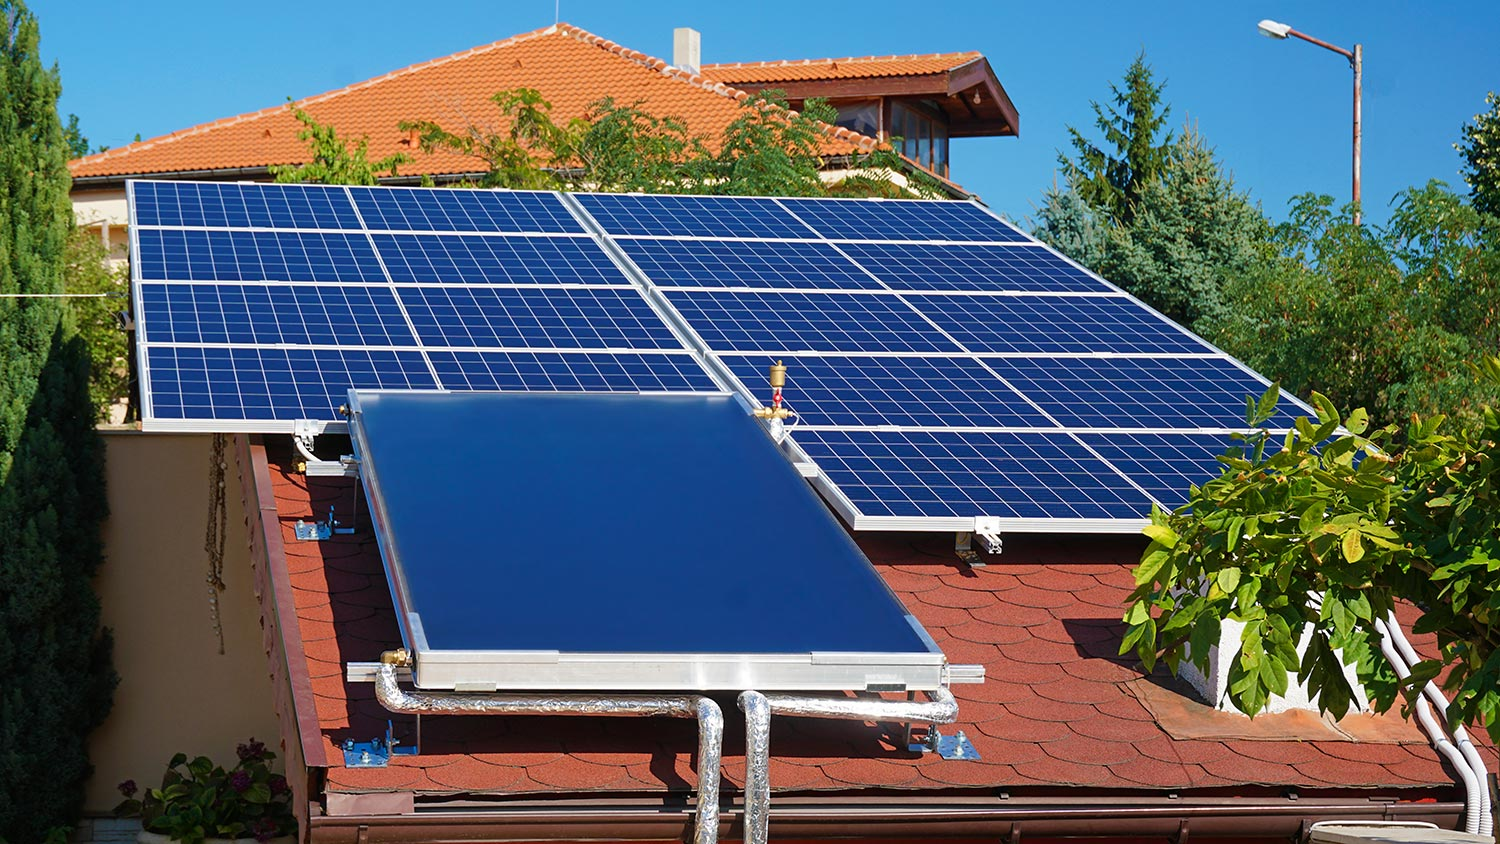 Installation of photovoltaic modules in Varna